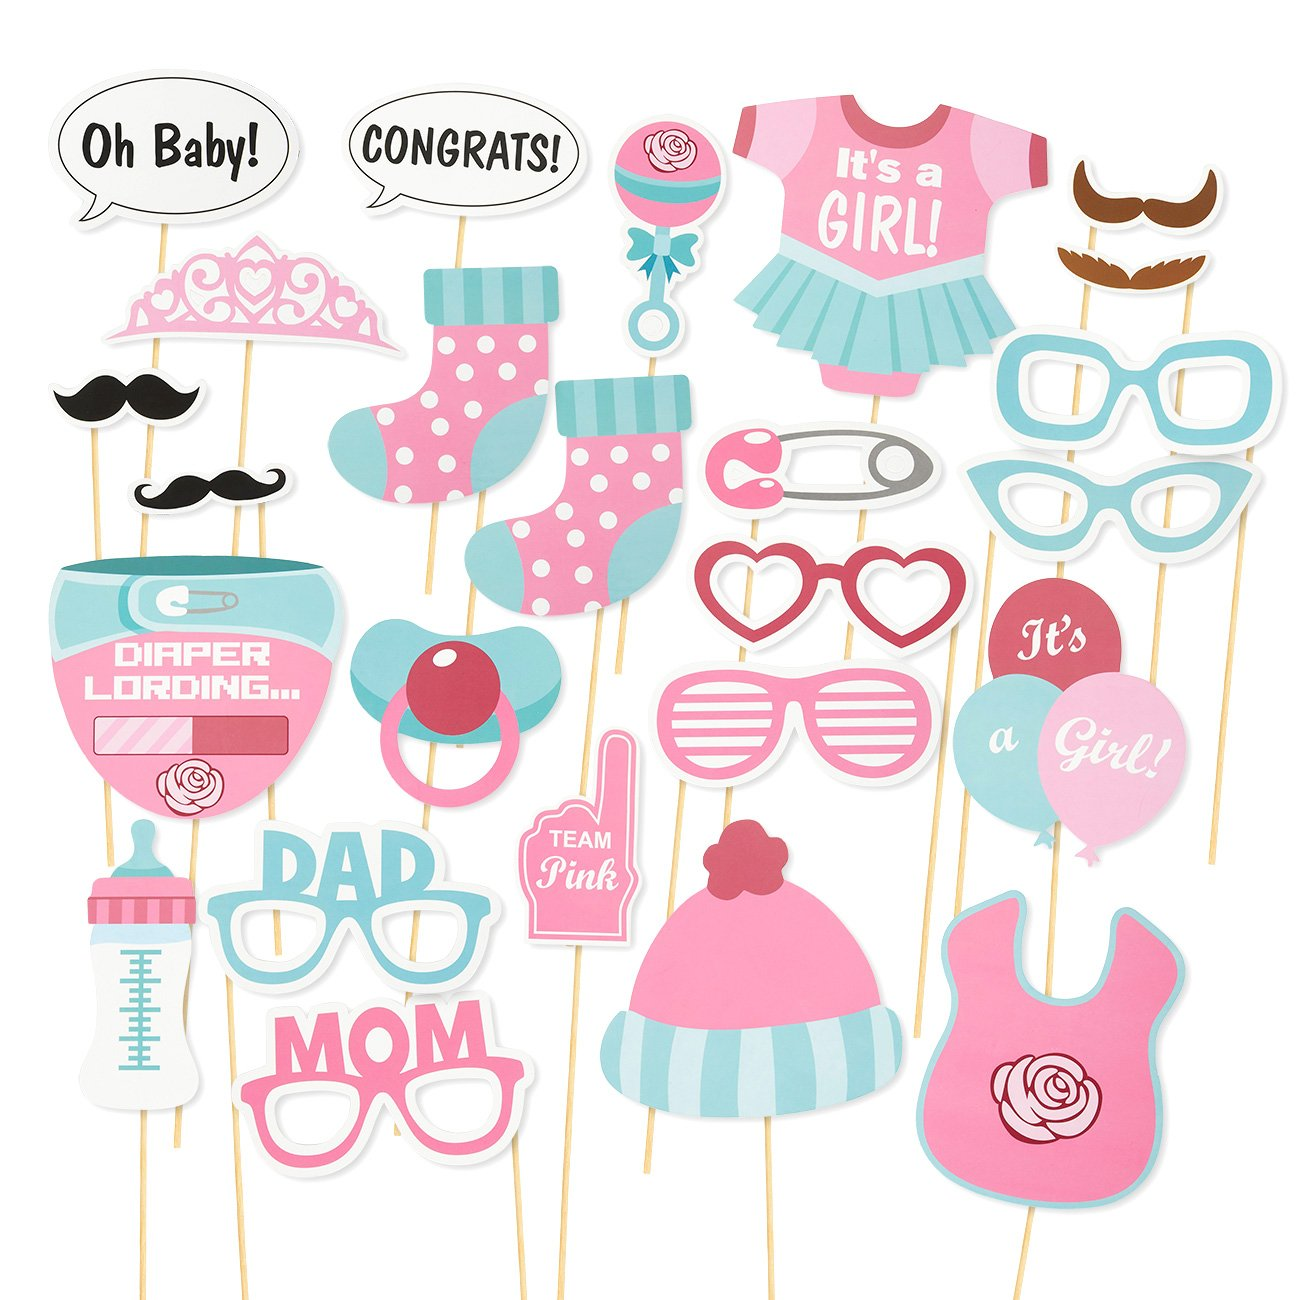 Amazoncom Baby Shower Photo Booth Props 25 Pack Gender Reveal